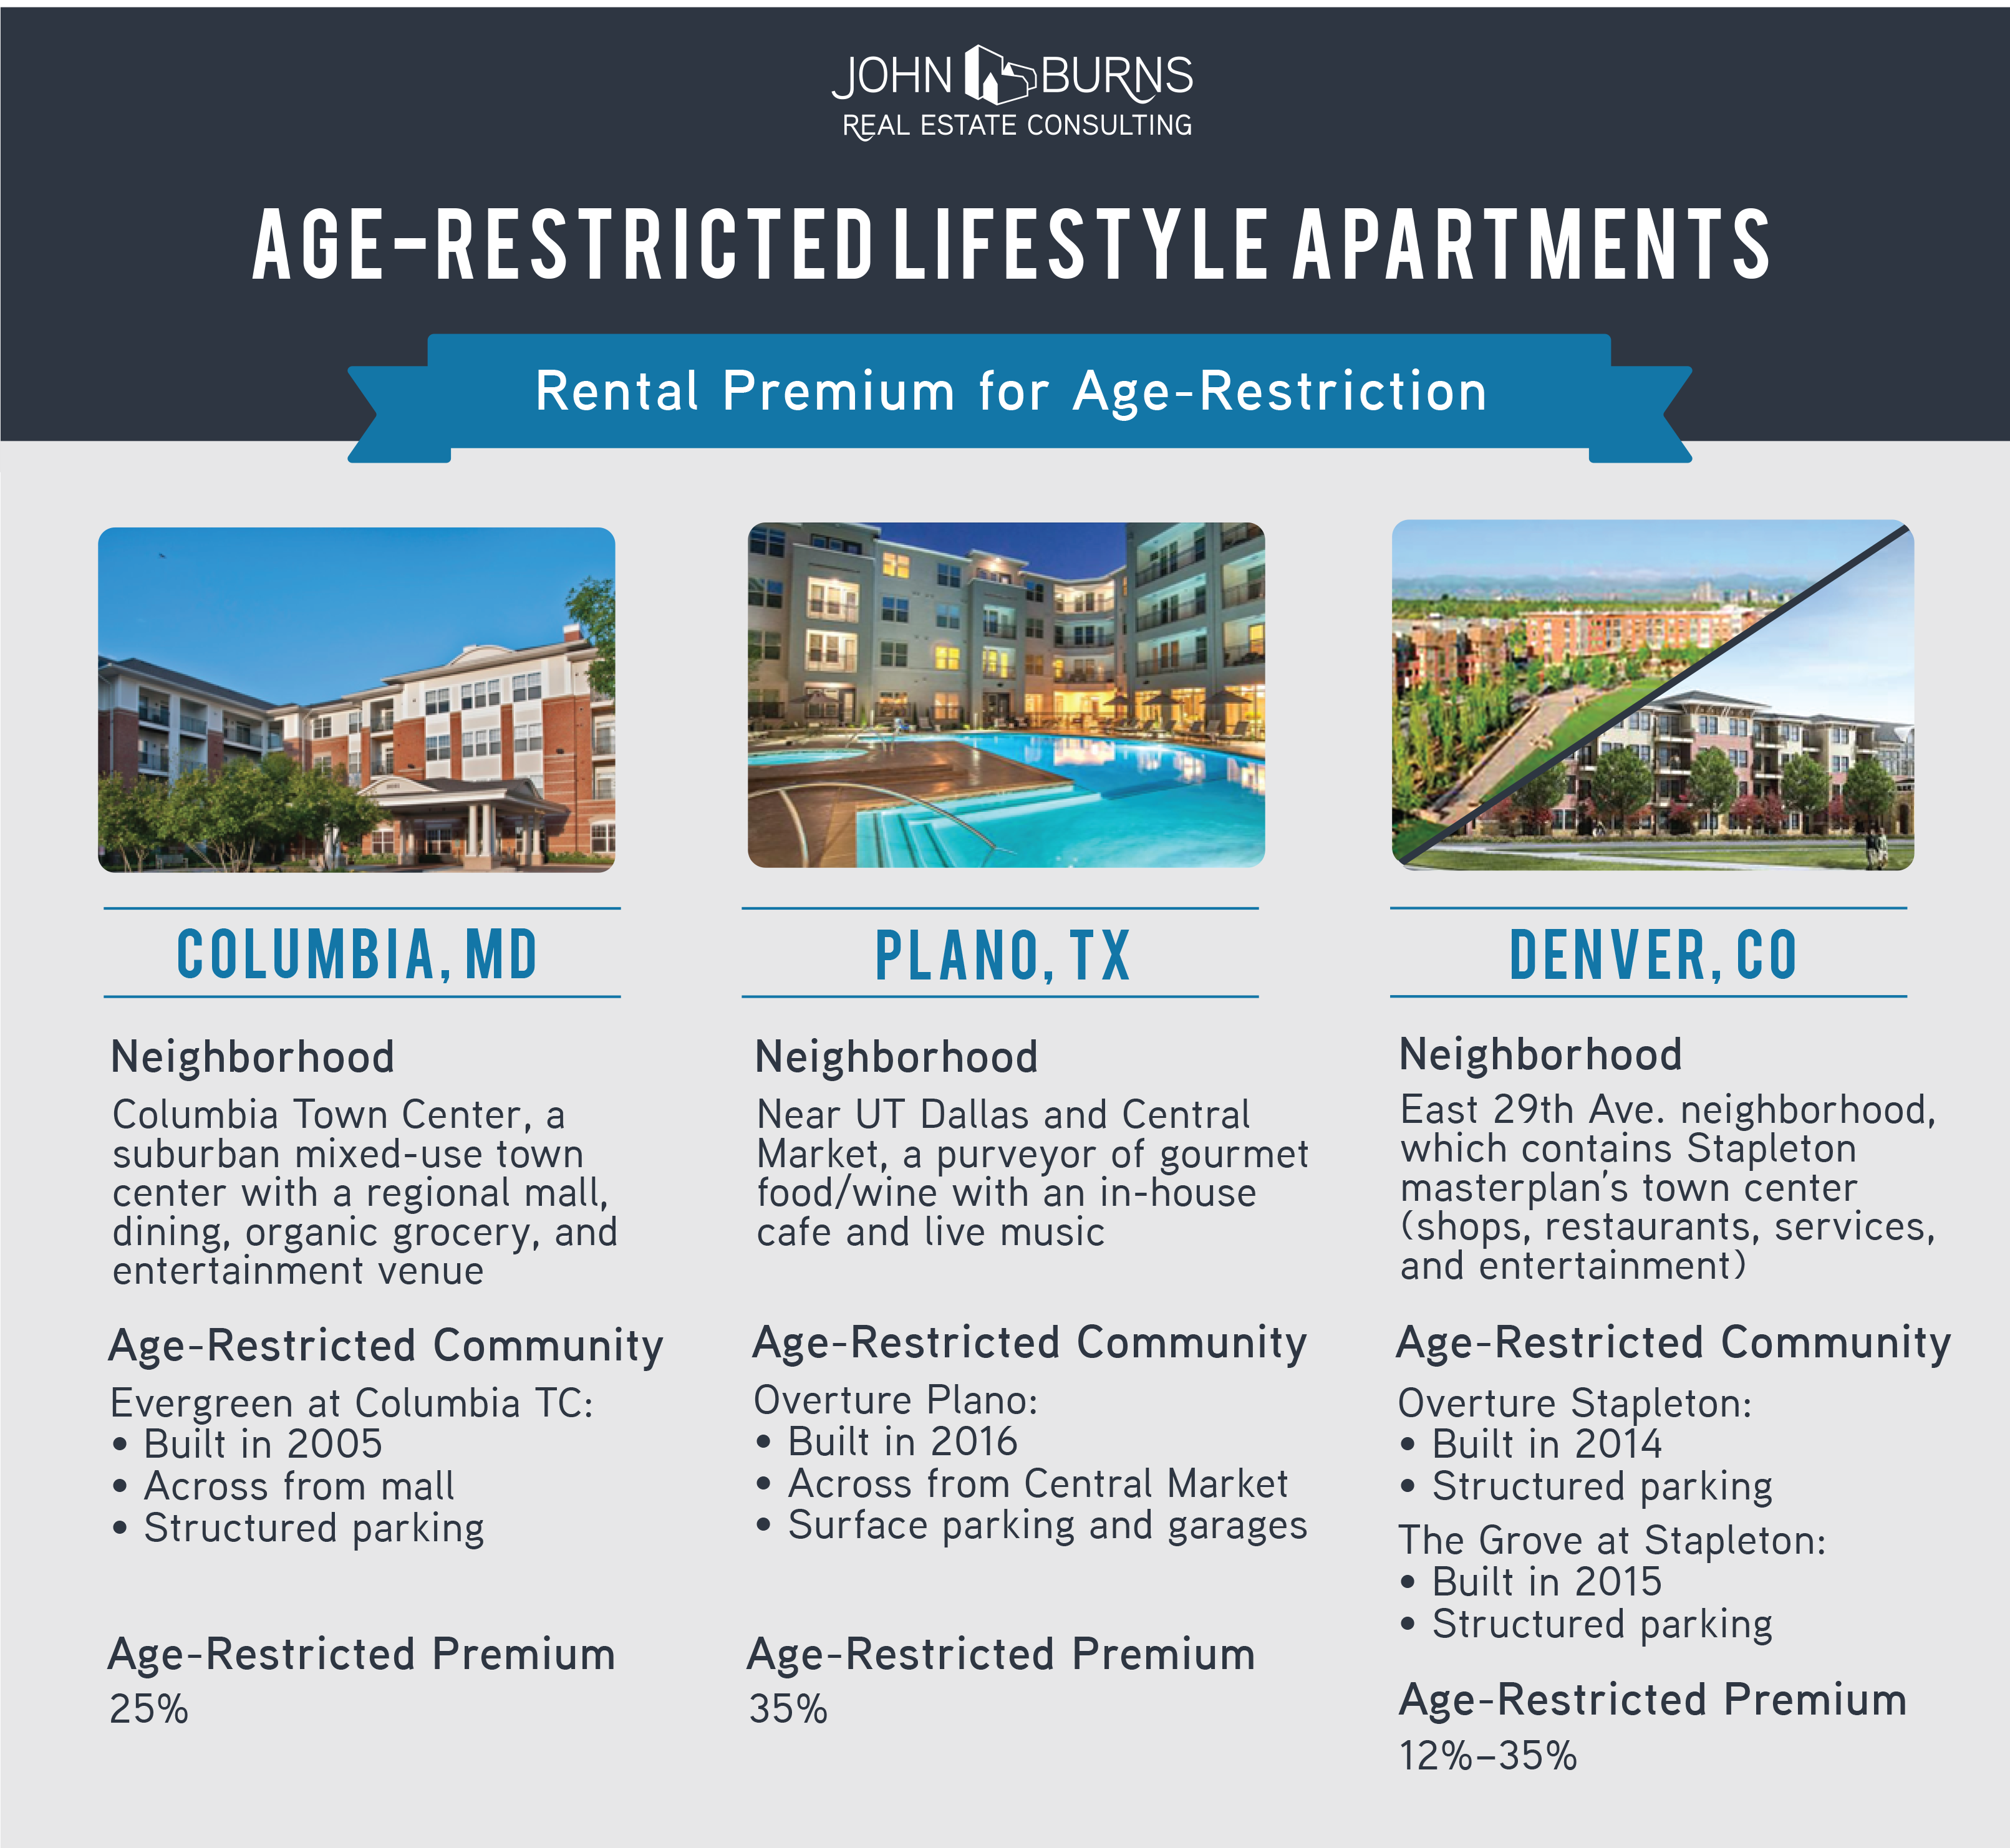 age-restricted-lifestyle-apartments-graphic2-final